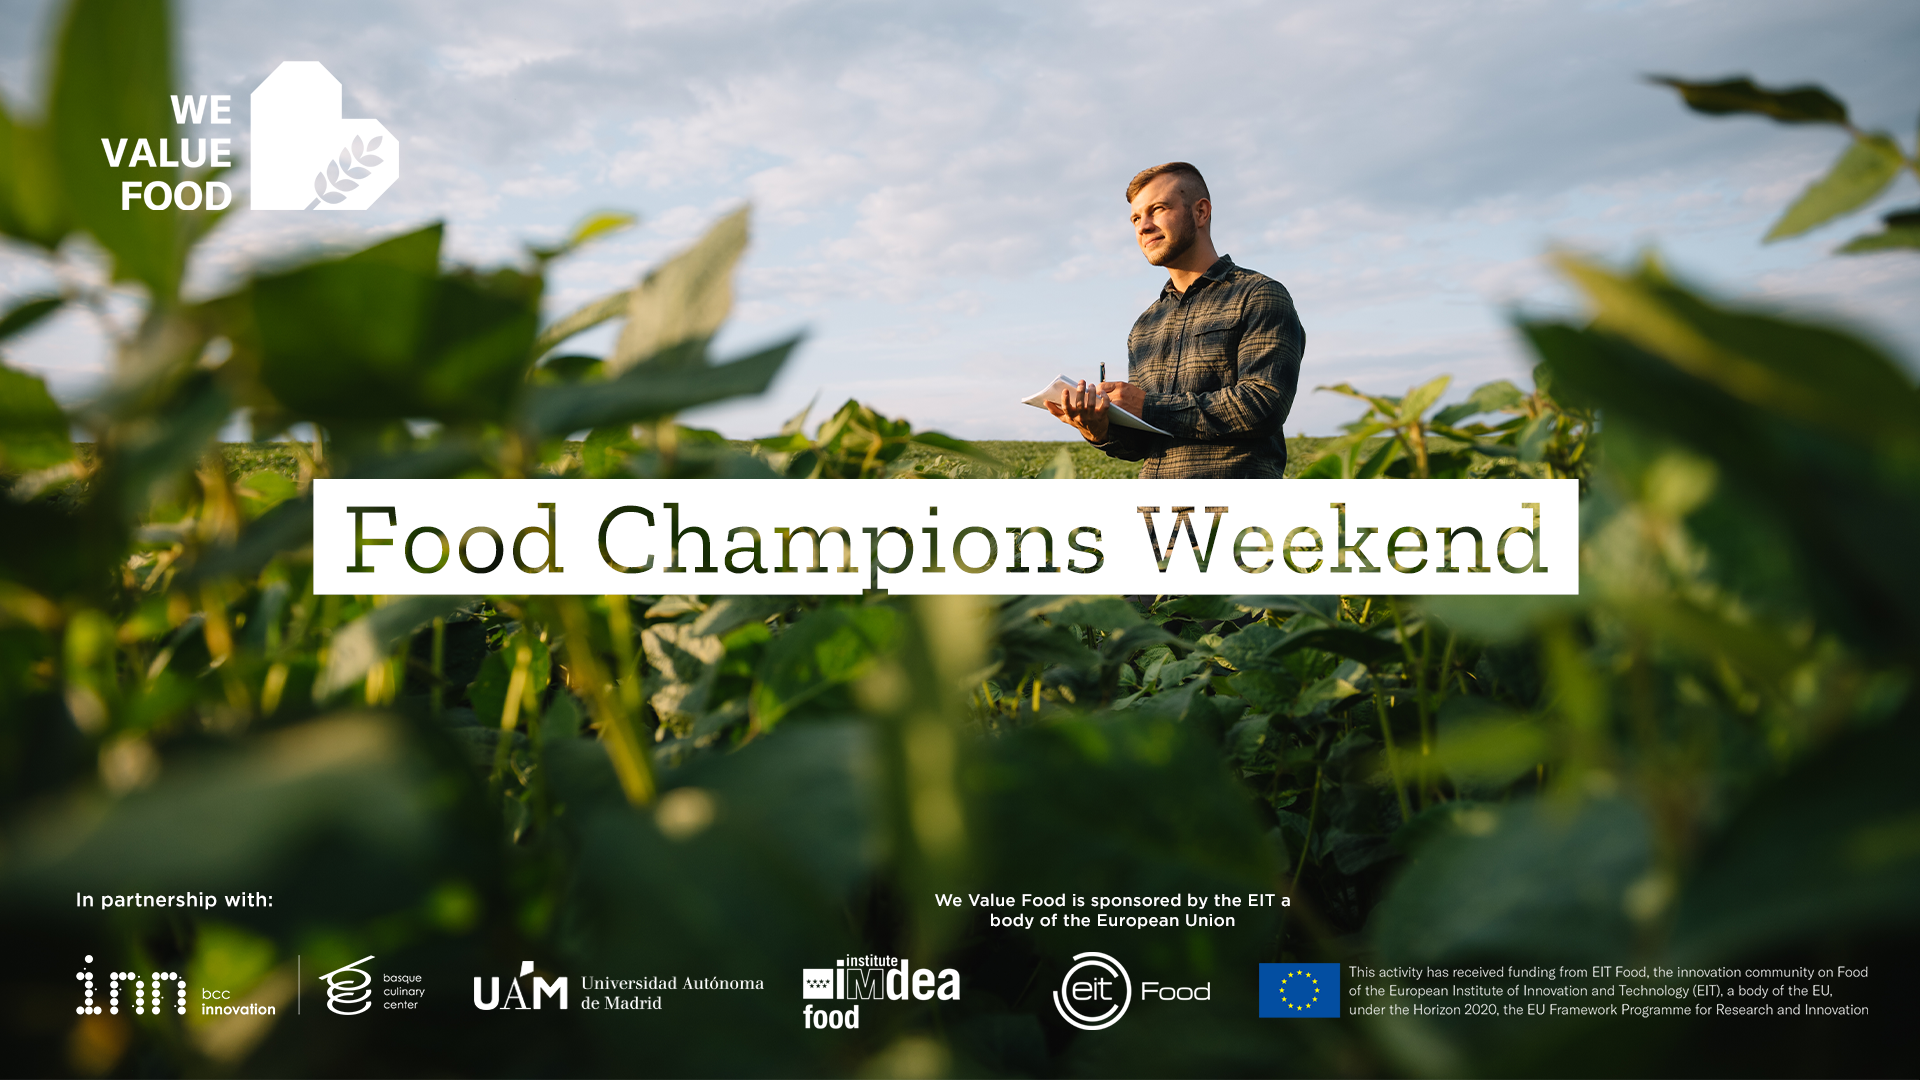 Food Champions Weekend